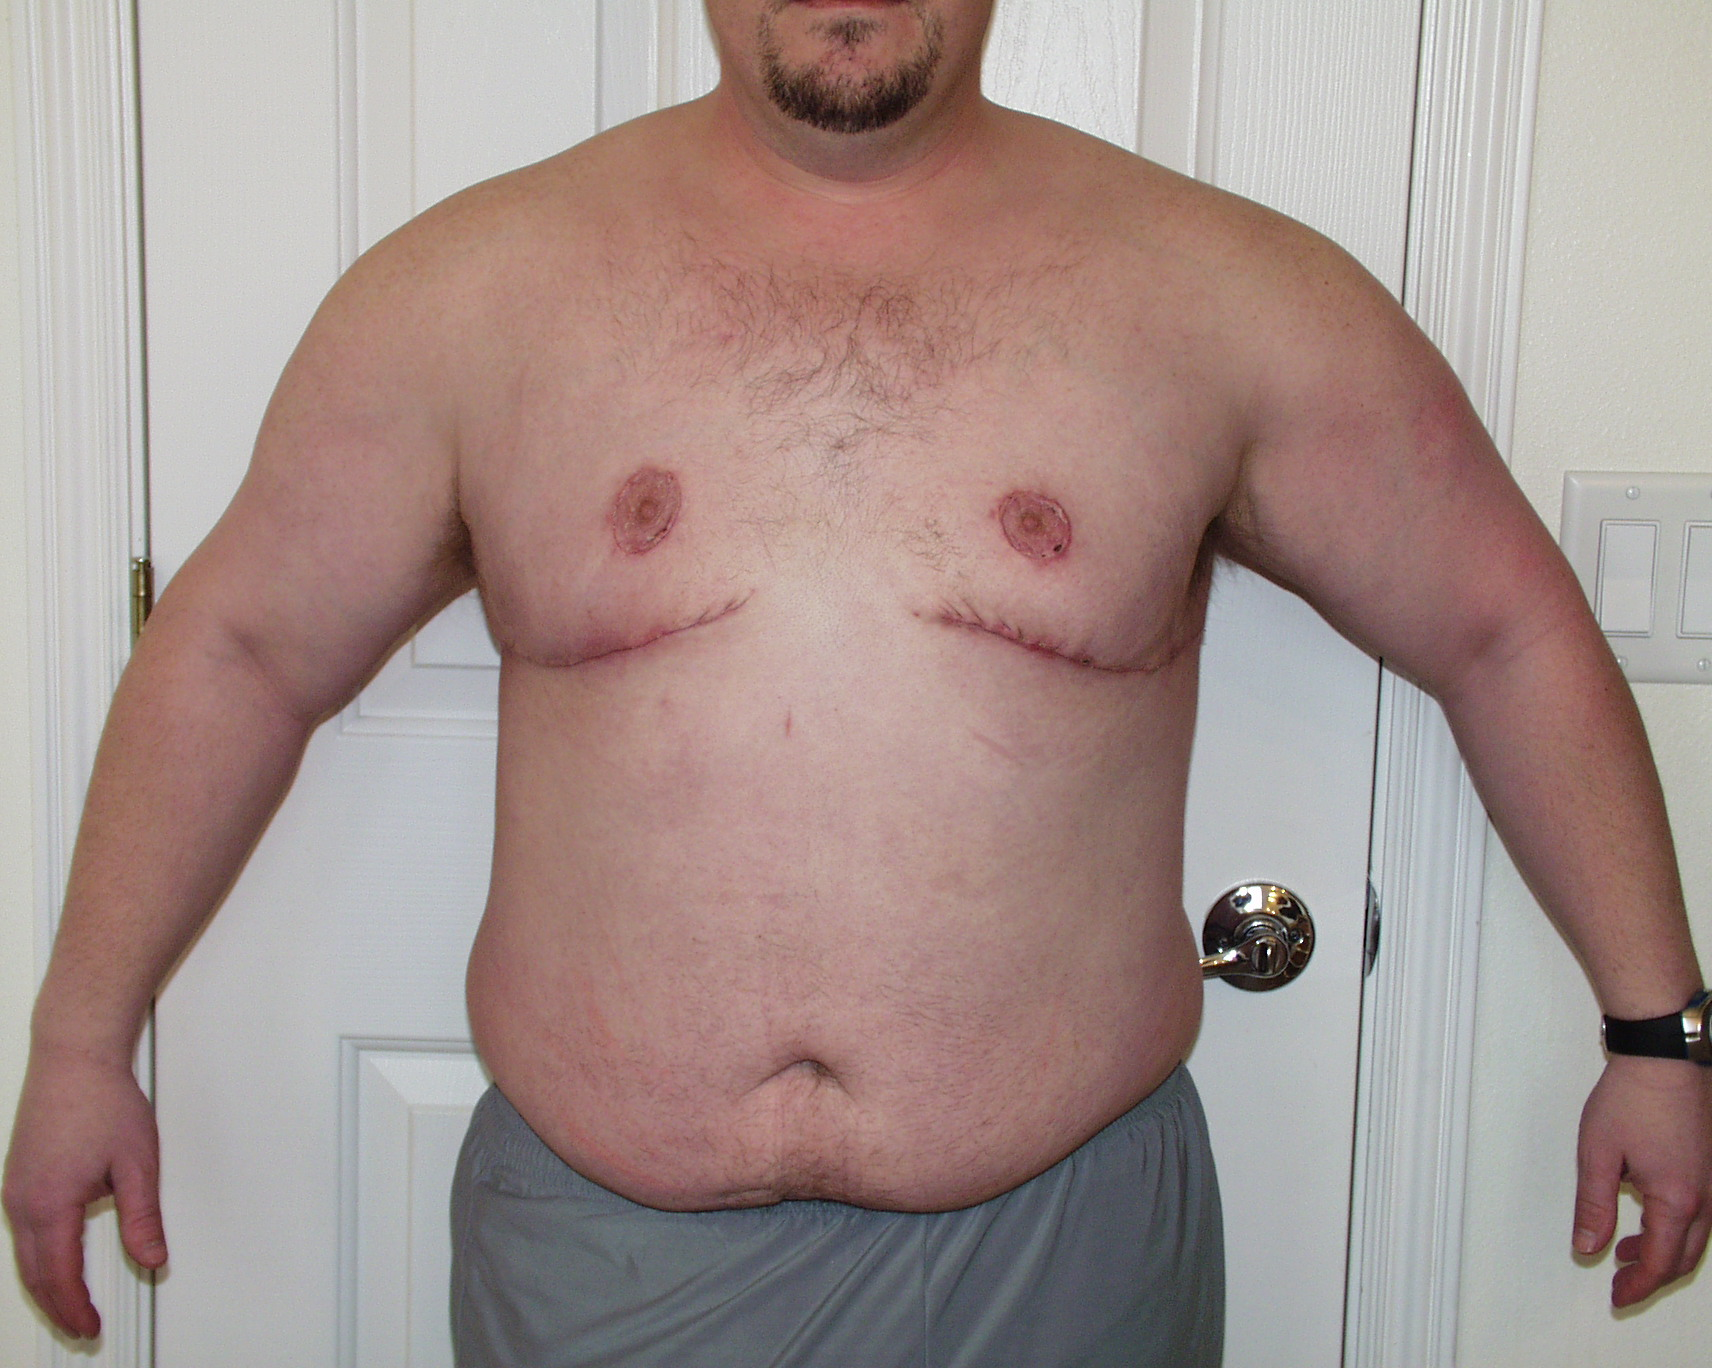 22 days post op